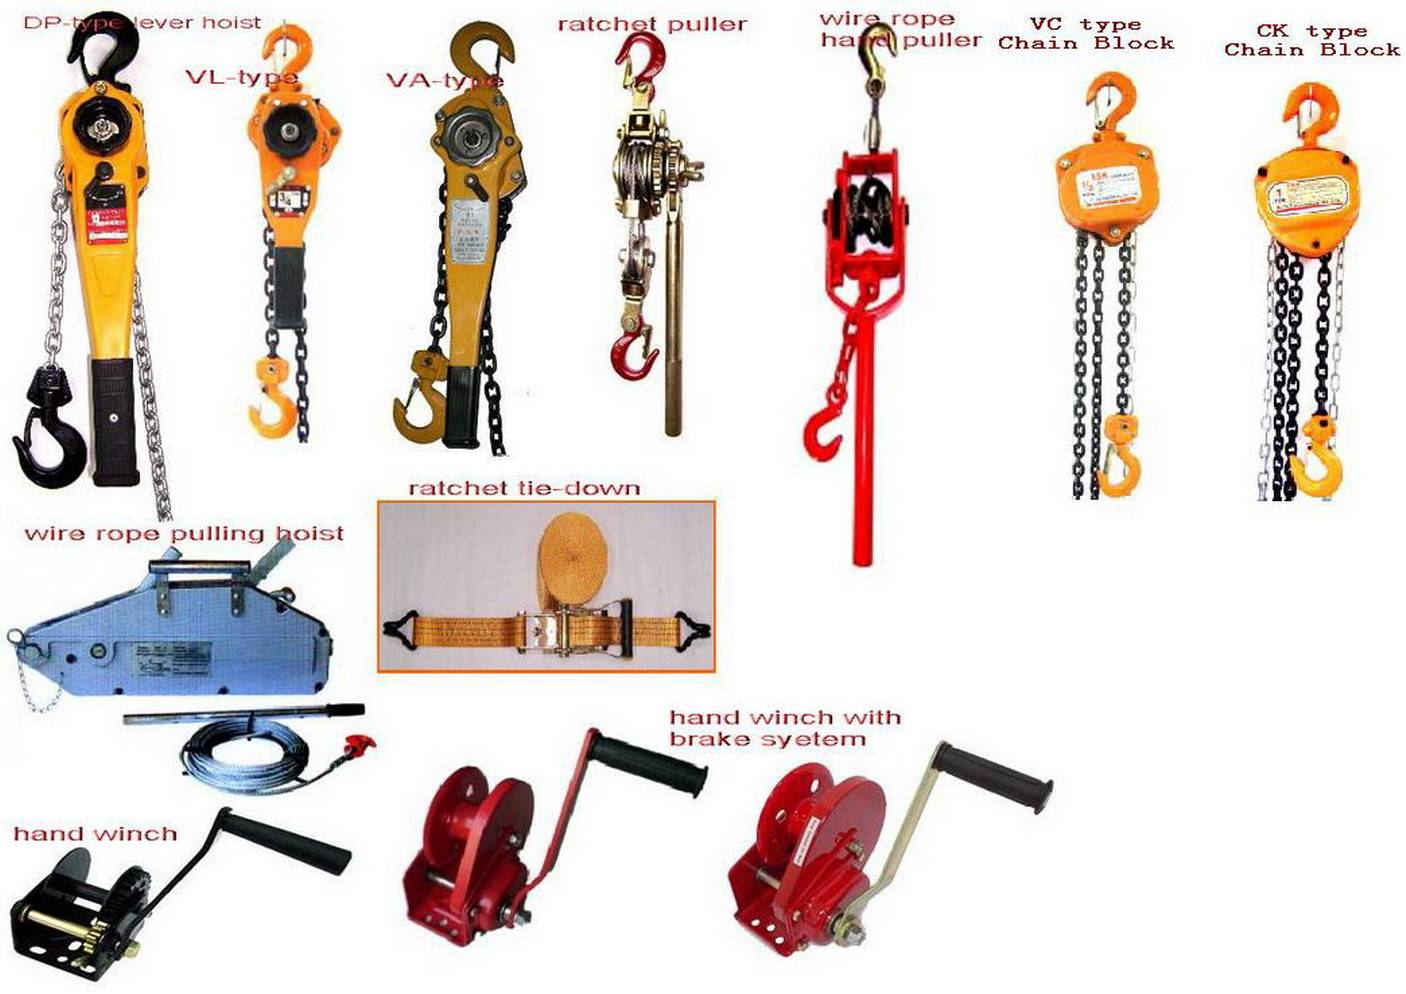 chain block,lever hoist,hand winch,ratchet hand puller, wire rope ...